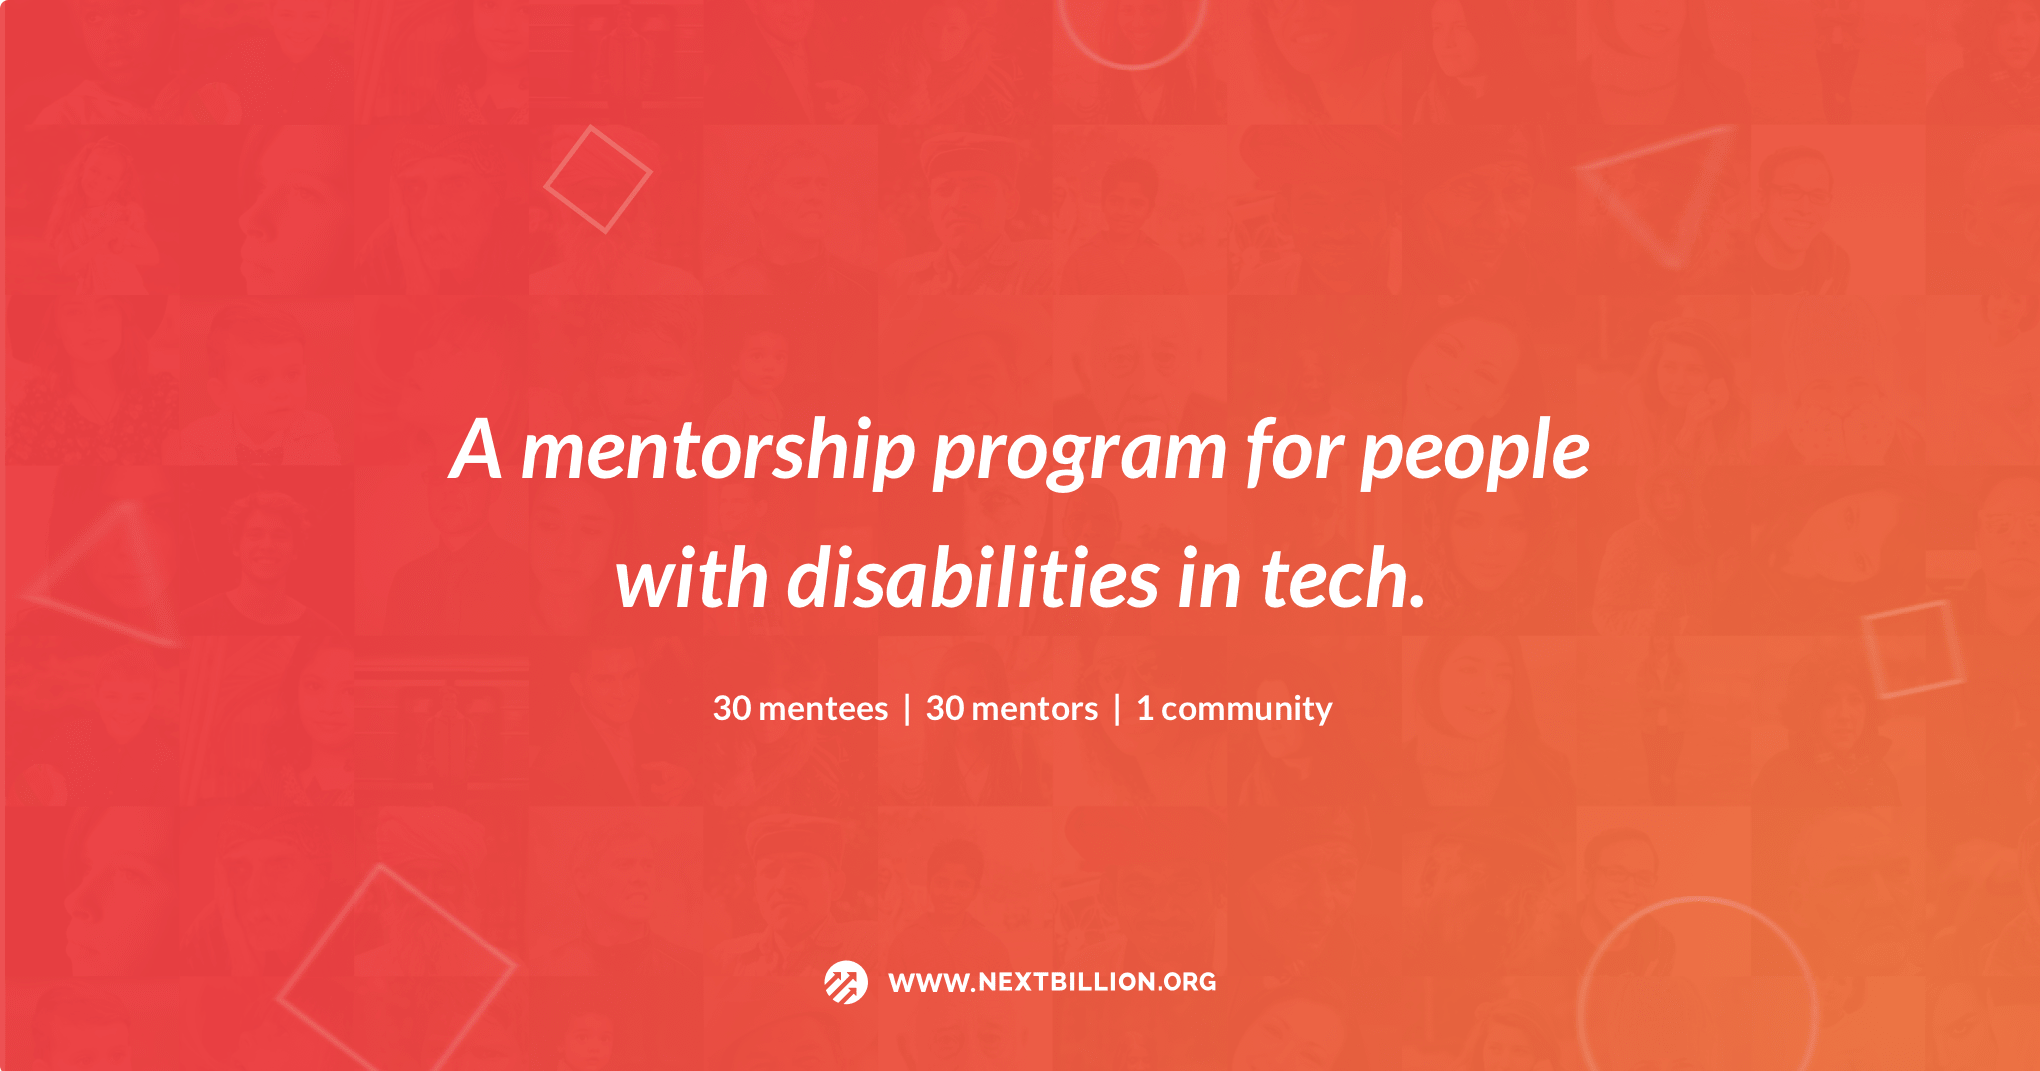 NextBillion Cohort 3 Mentorship Program for Students with Disabilities based in California!